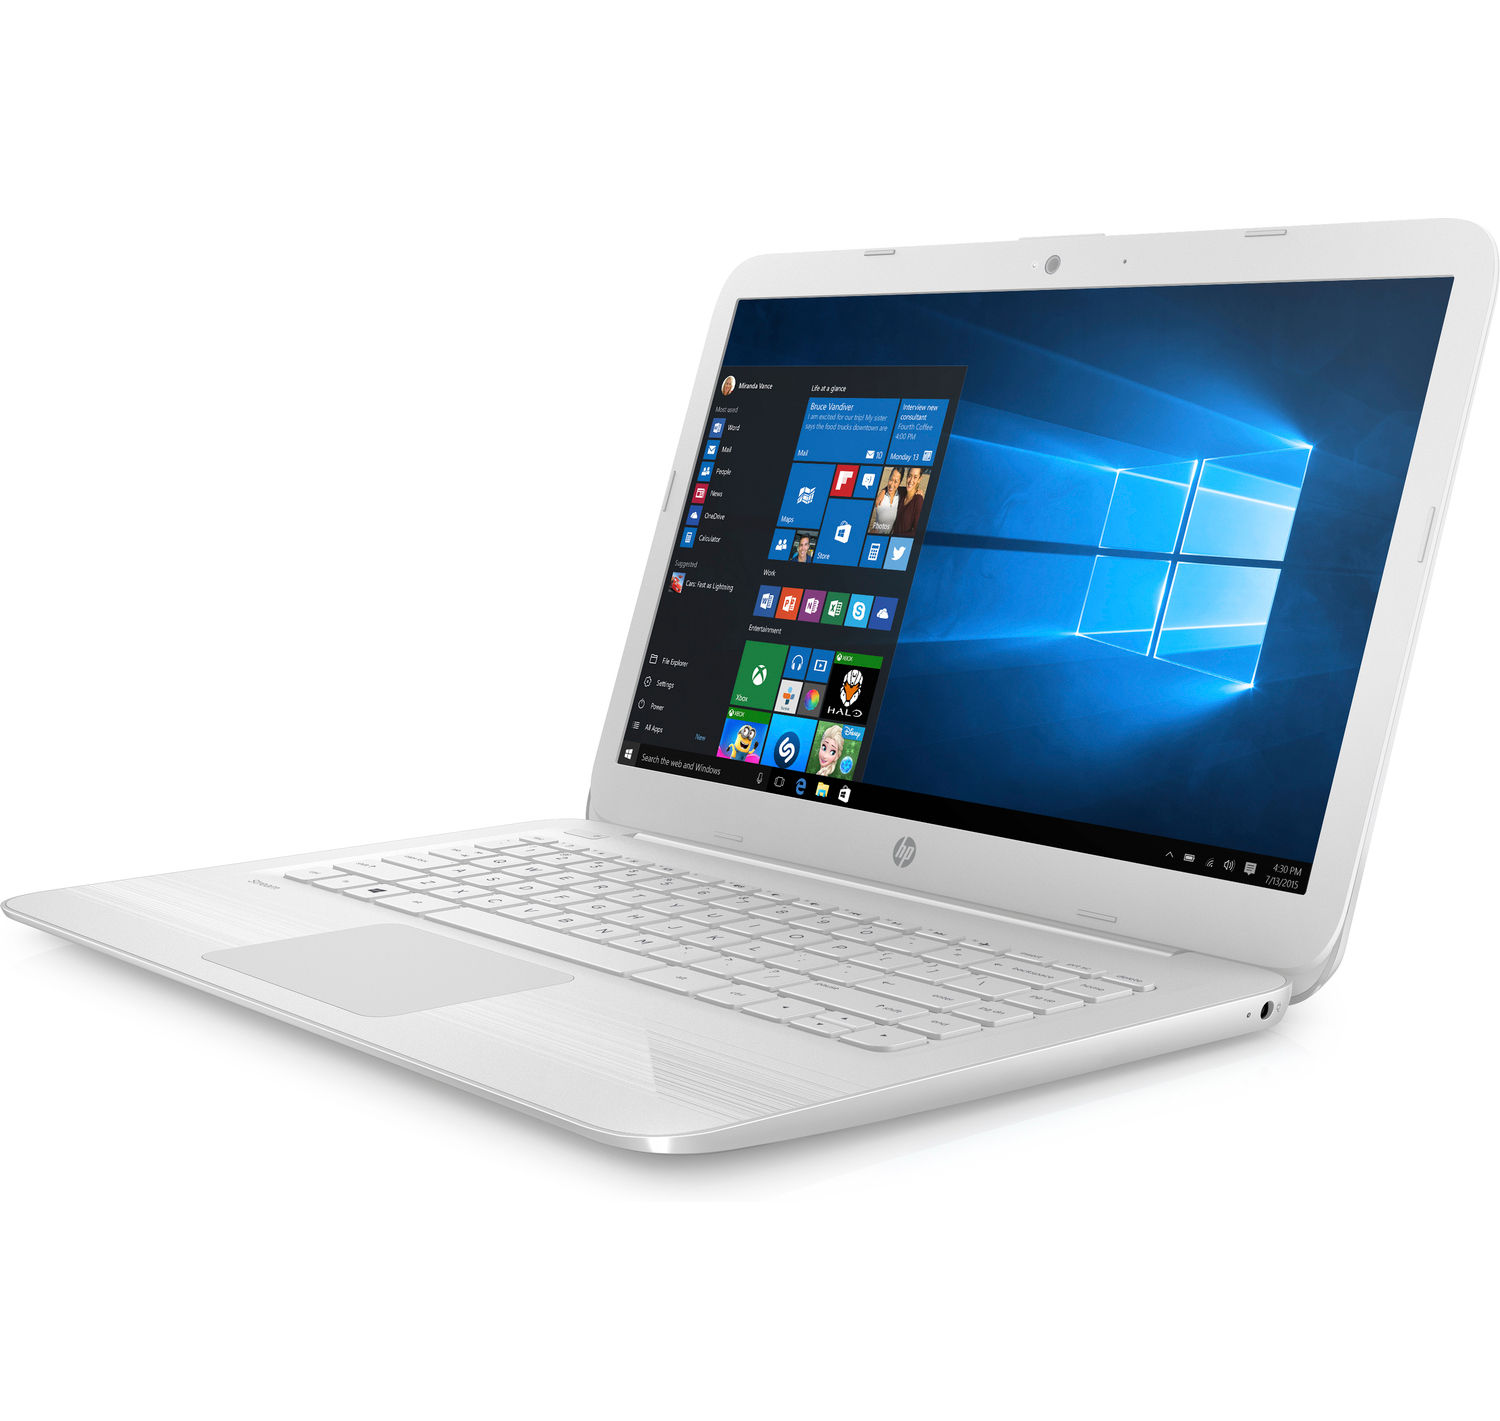 "HP Stream Notebook 14-ax027cl 14"" Screen, Celeron N 1.6GHz, 4GB RAM, 32GB eMMC, White (Certified Refurbished)"